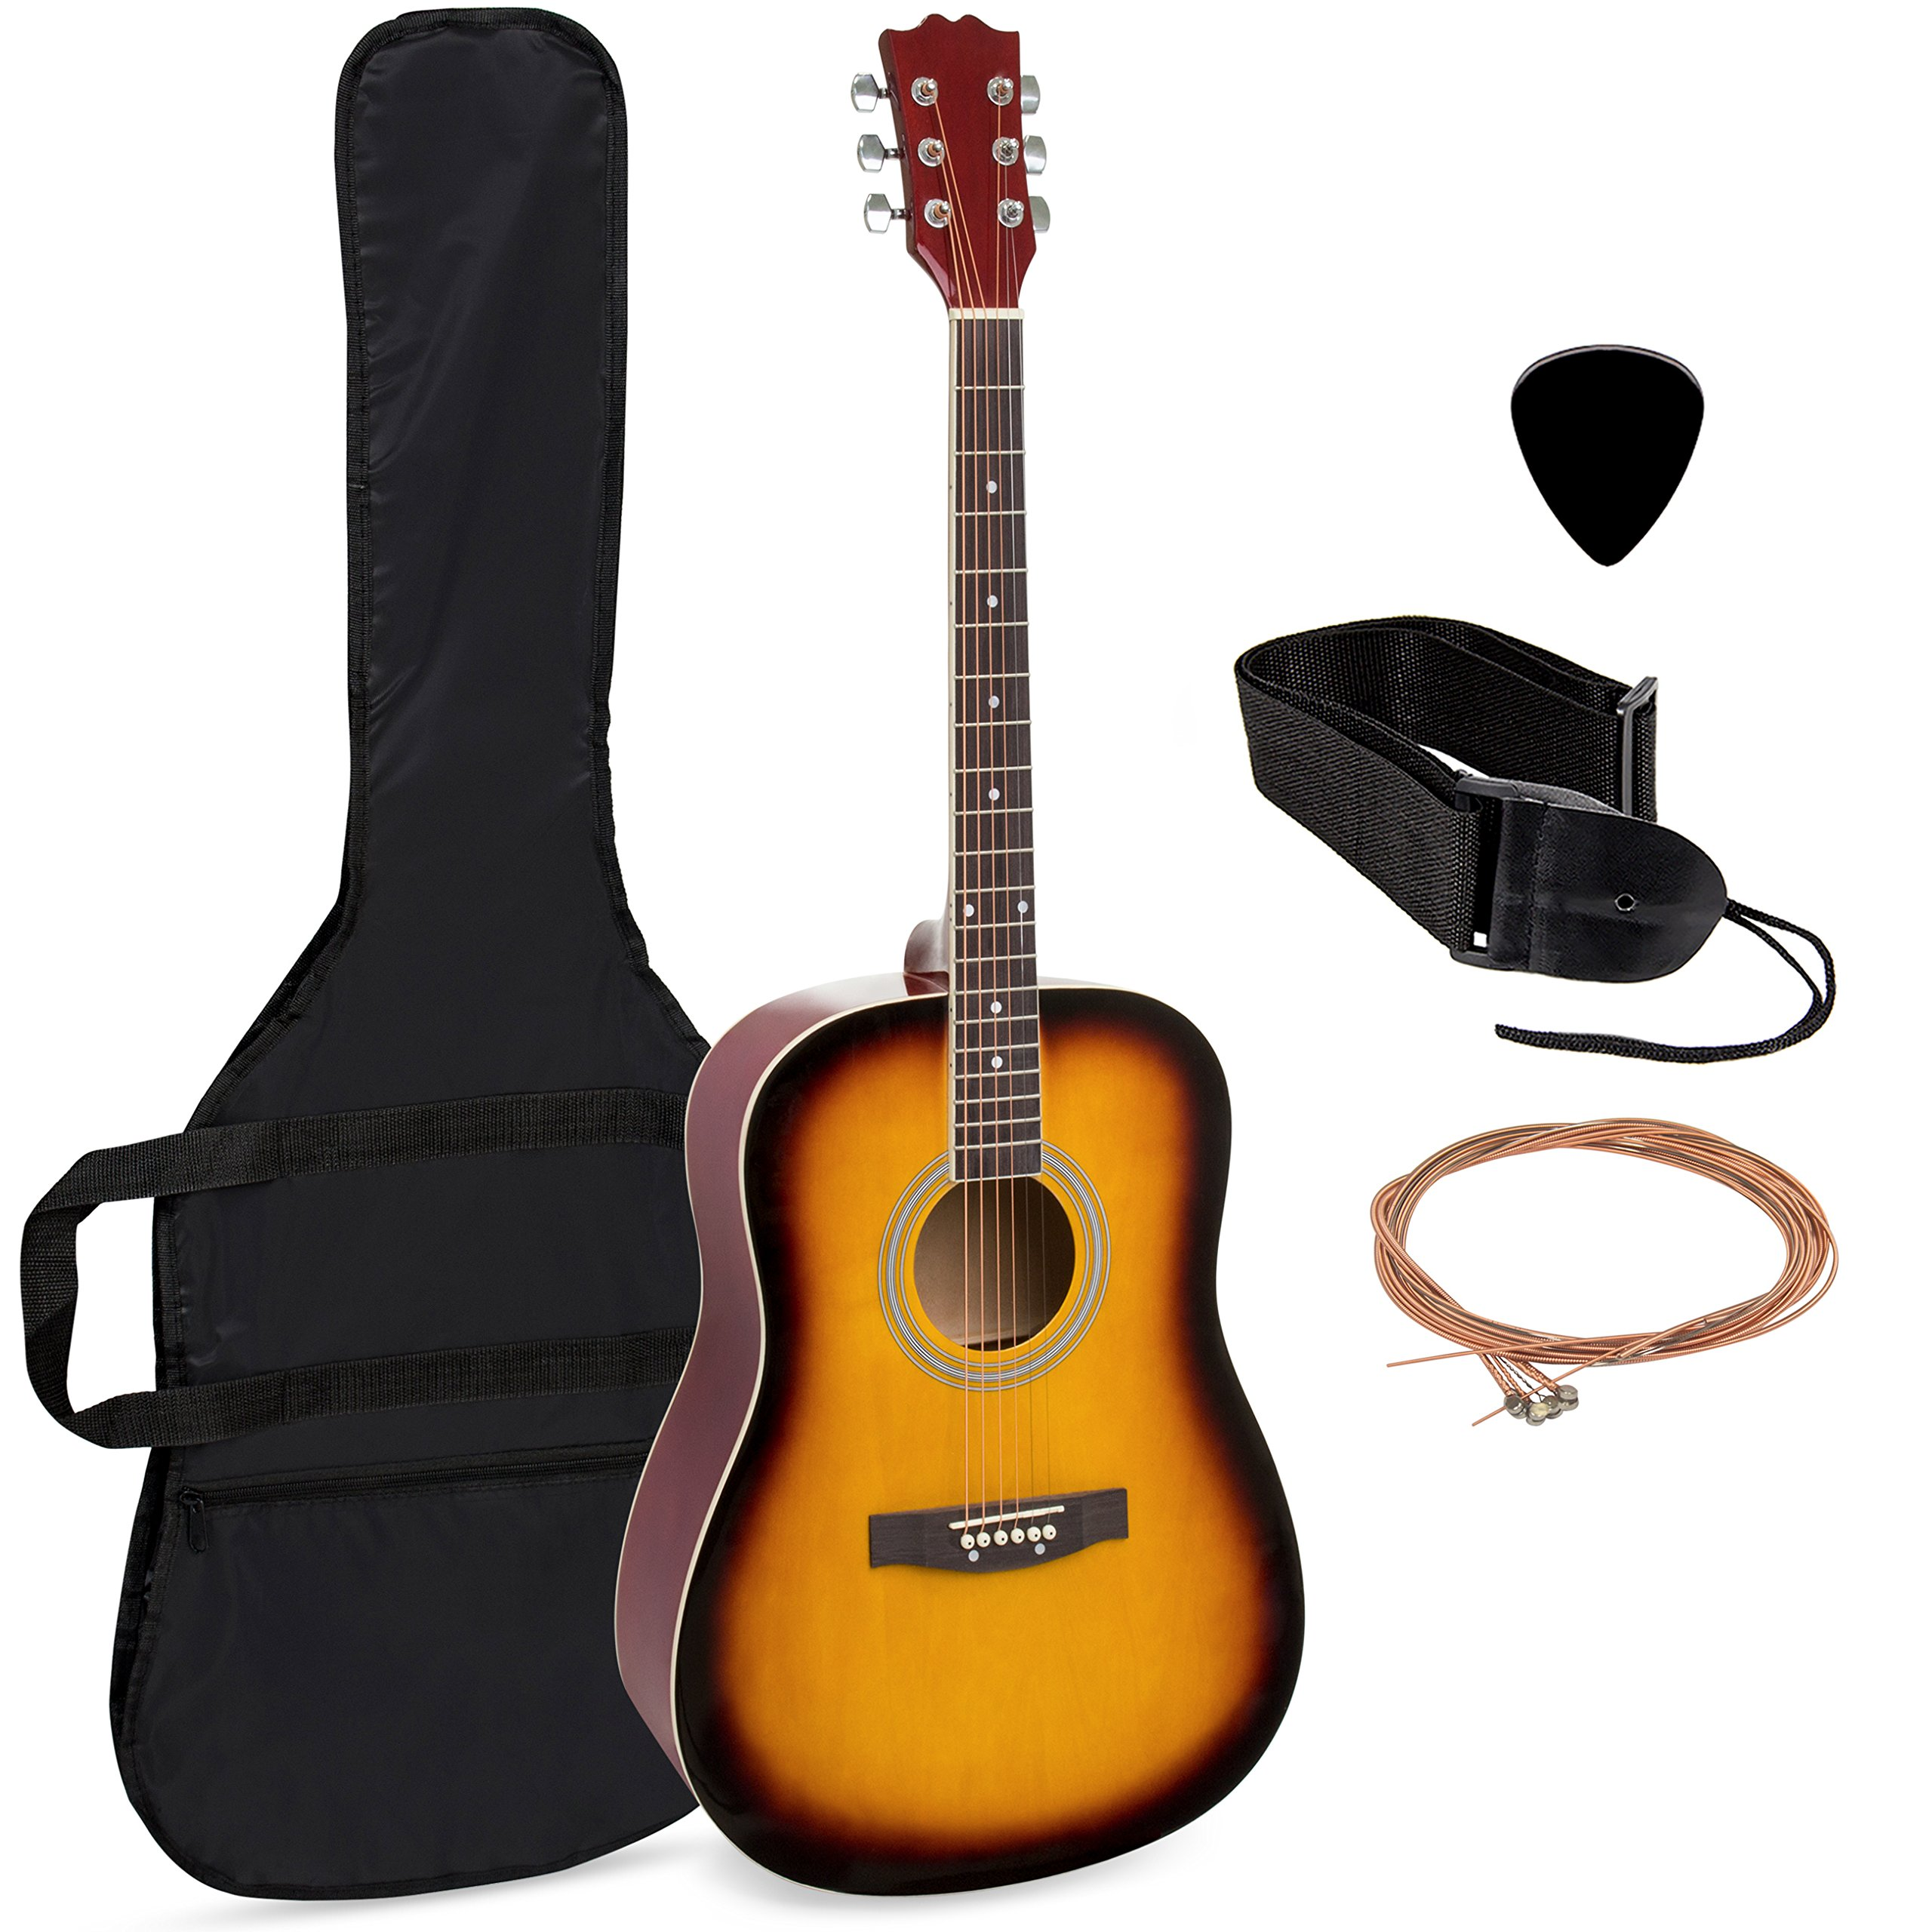 Best Choice Products 41in Full Size All-Wood Acoustic Guitar Starter Kit w/Case, Pick, Strap, Extra Strings - Sunburst